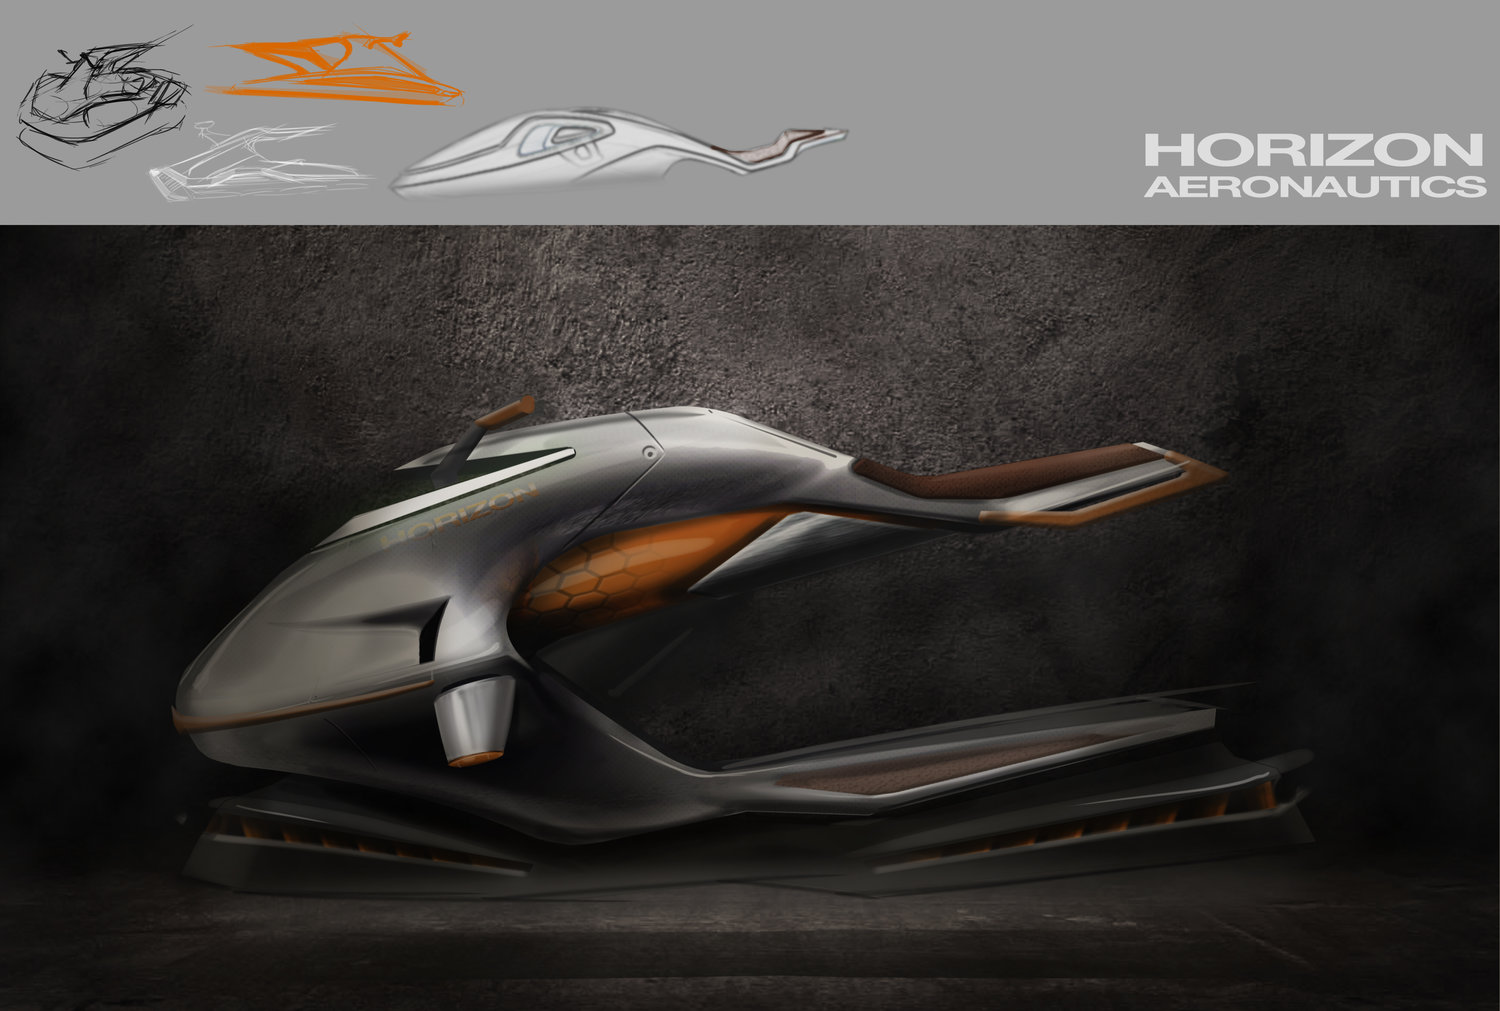 Parts Sponsorship - Put your name in the history books. Align your brand with the latest in hover technology. Gain millions of dollars in free marketing and increase your sales by partnering with Horizon Hover and our hover bike series.For more information contact: Anna@horizonhover.com